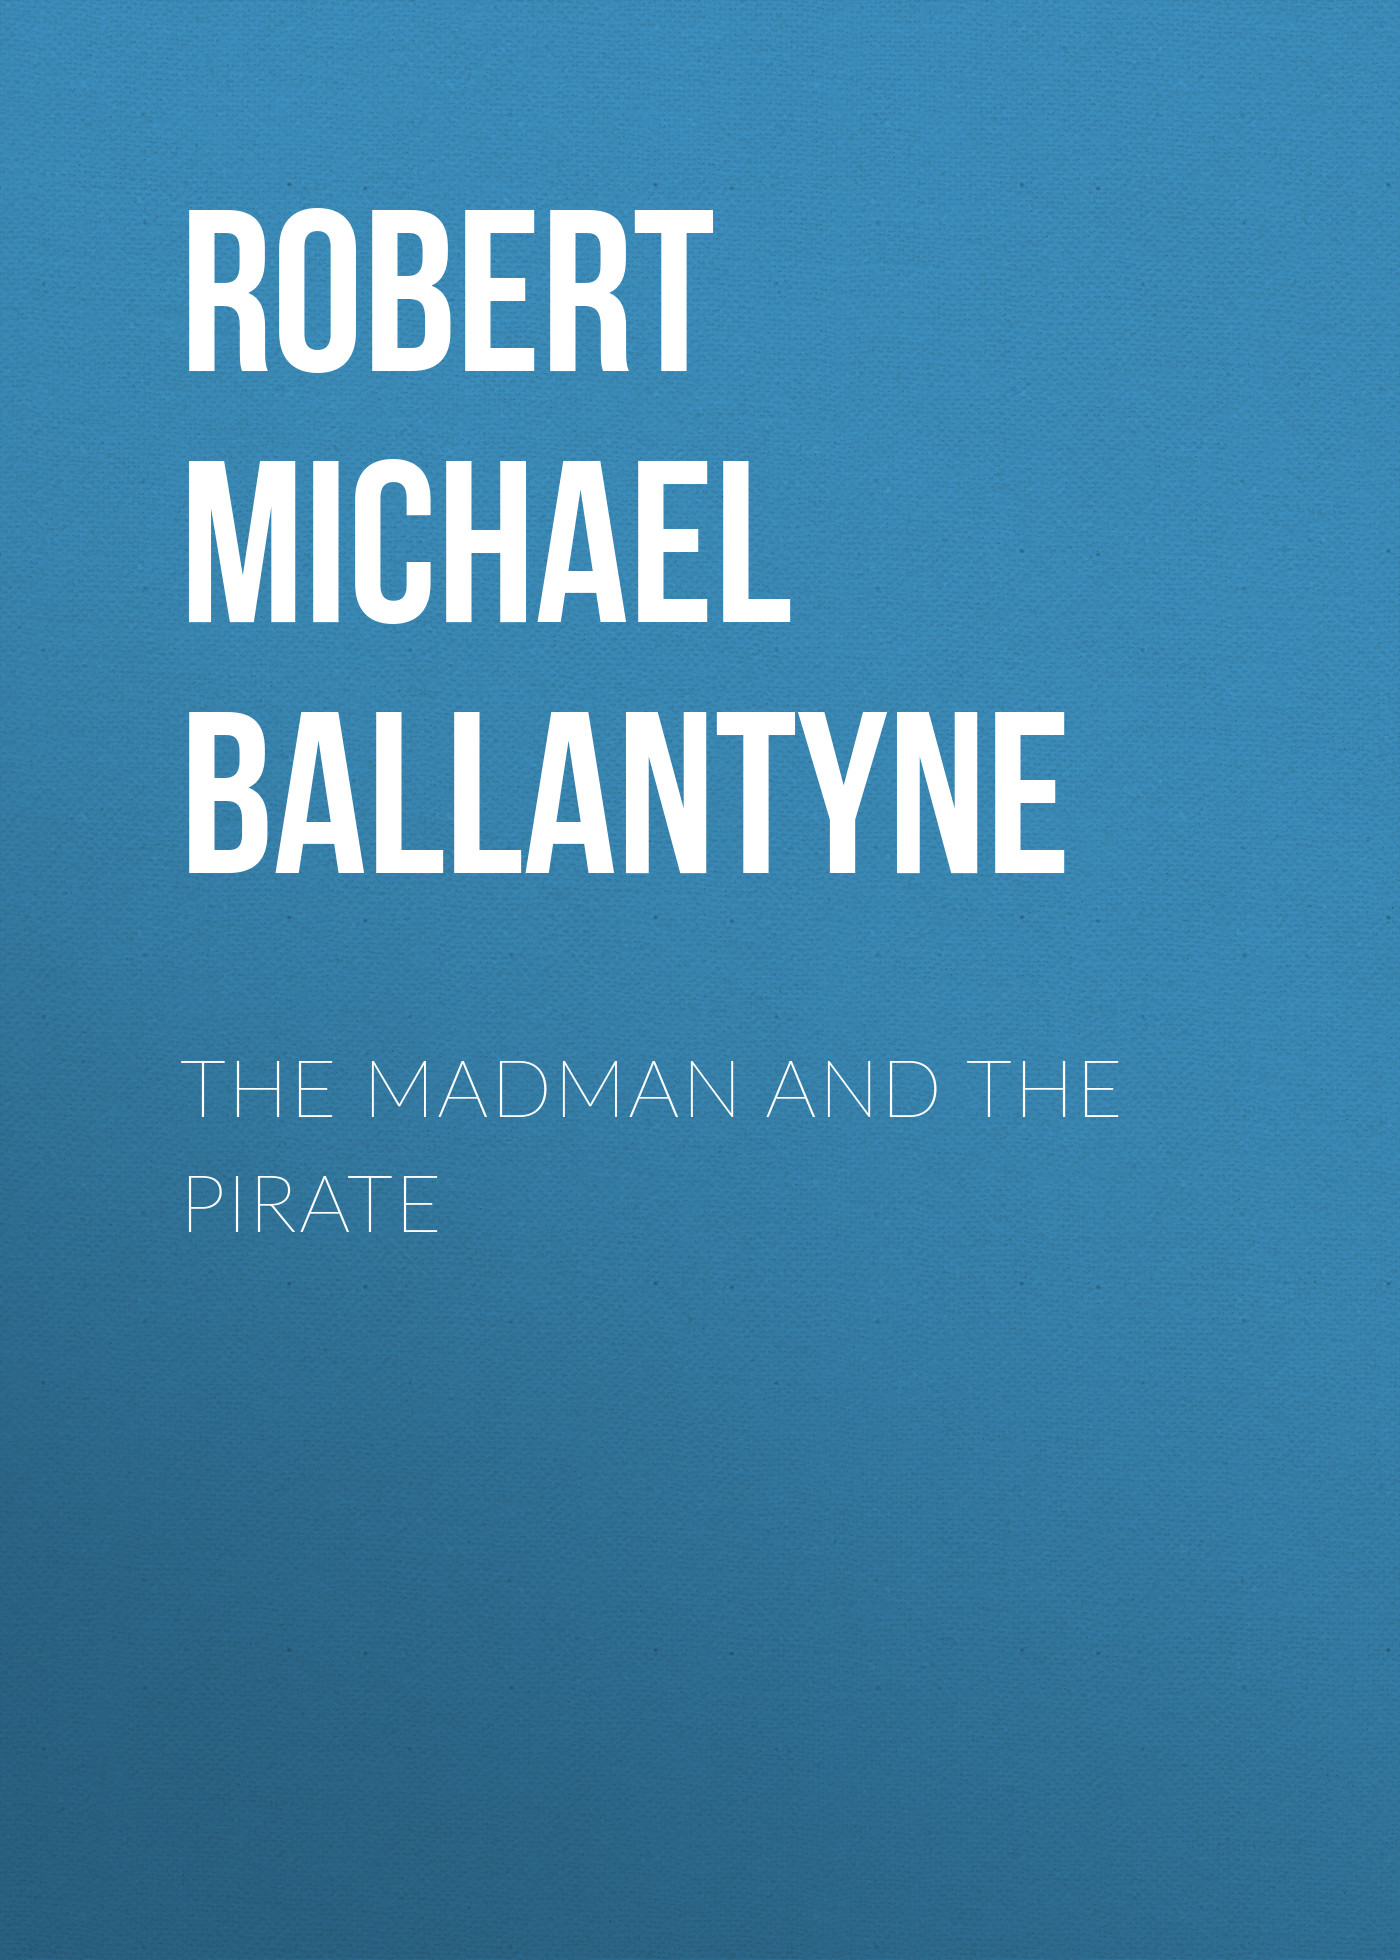 лучшая цена Robert Michael Ballantyne The Madman and the Pirate